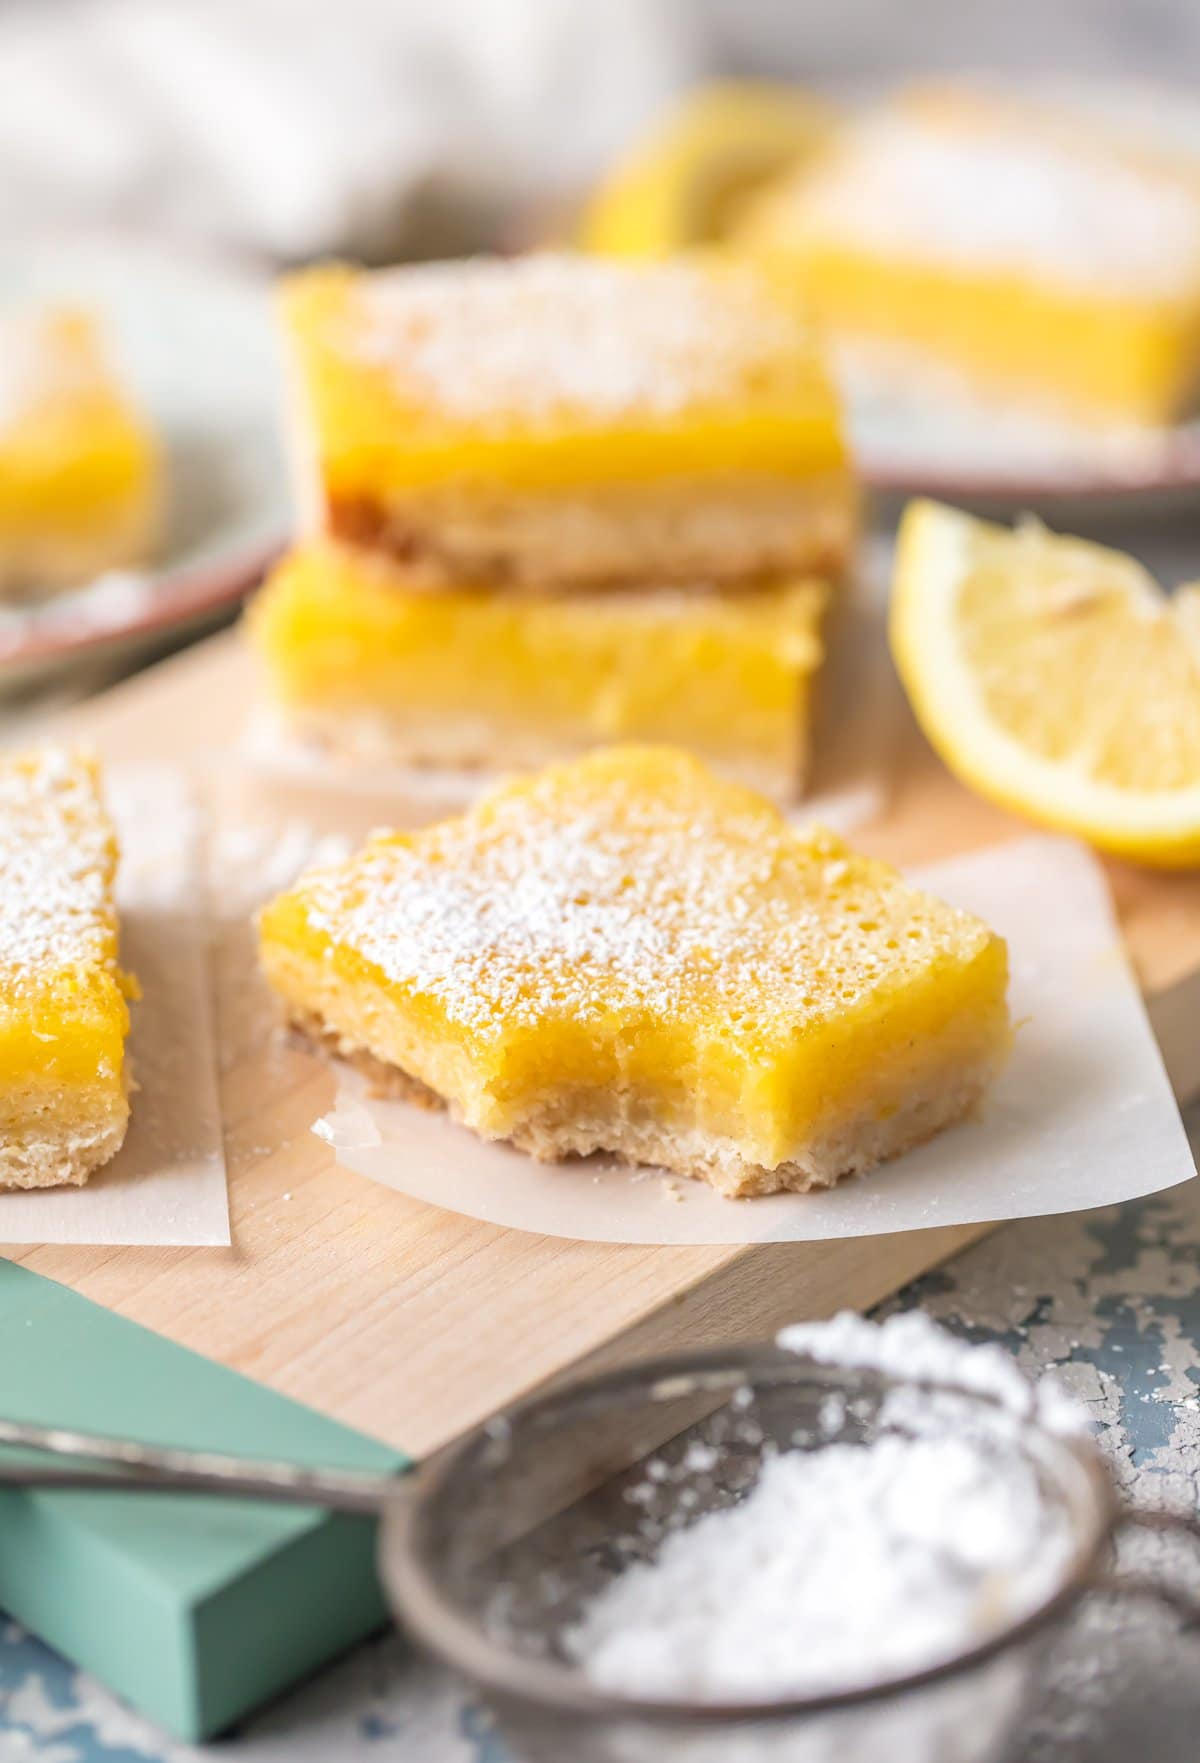 Lemon Bars (Gluten Free Lemon Bar Recipe) are the easiest and best lemon bar recipe, and they just so happen to be gluten free! These Lemon Squares are SO DELICIOUS! These are one of our favorite easy gluten free desserts. Thick, creamy, tart, and utterly delicious; The Best Lemon Bars you'll ever taste.